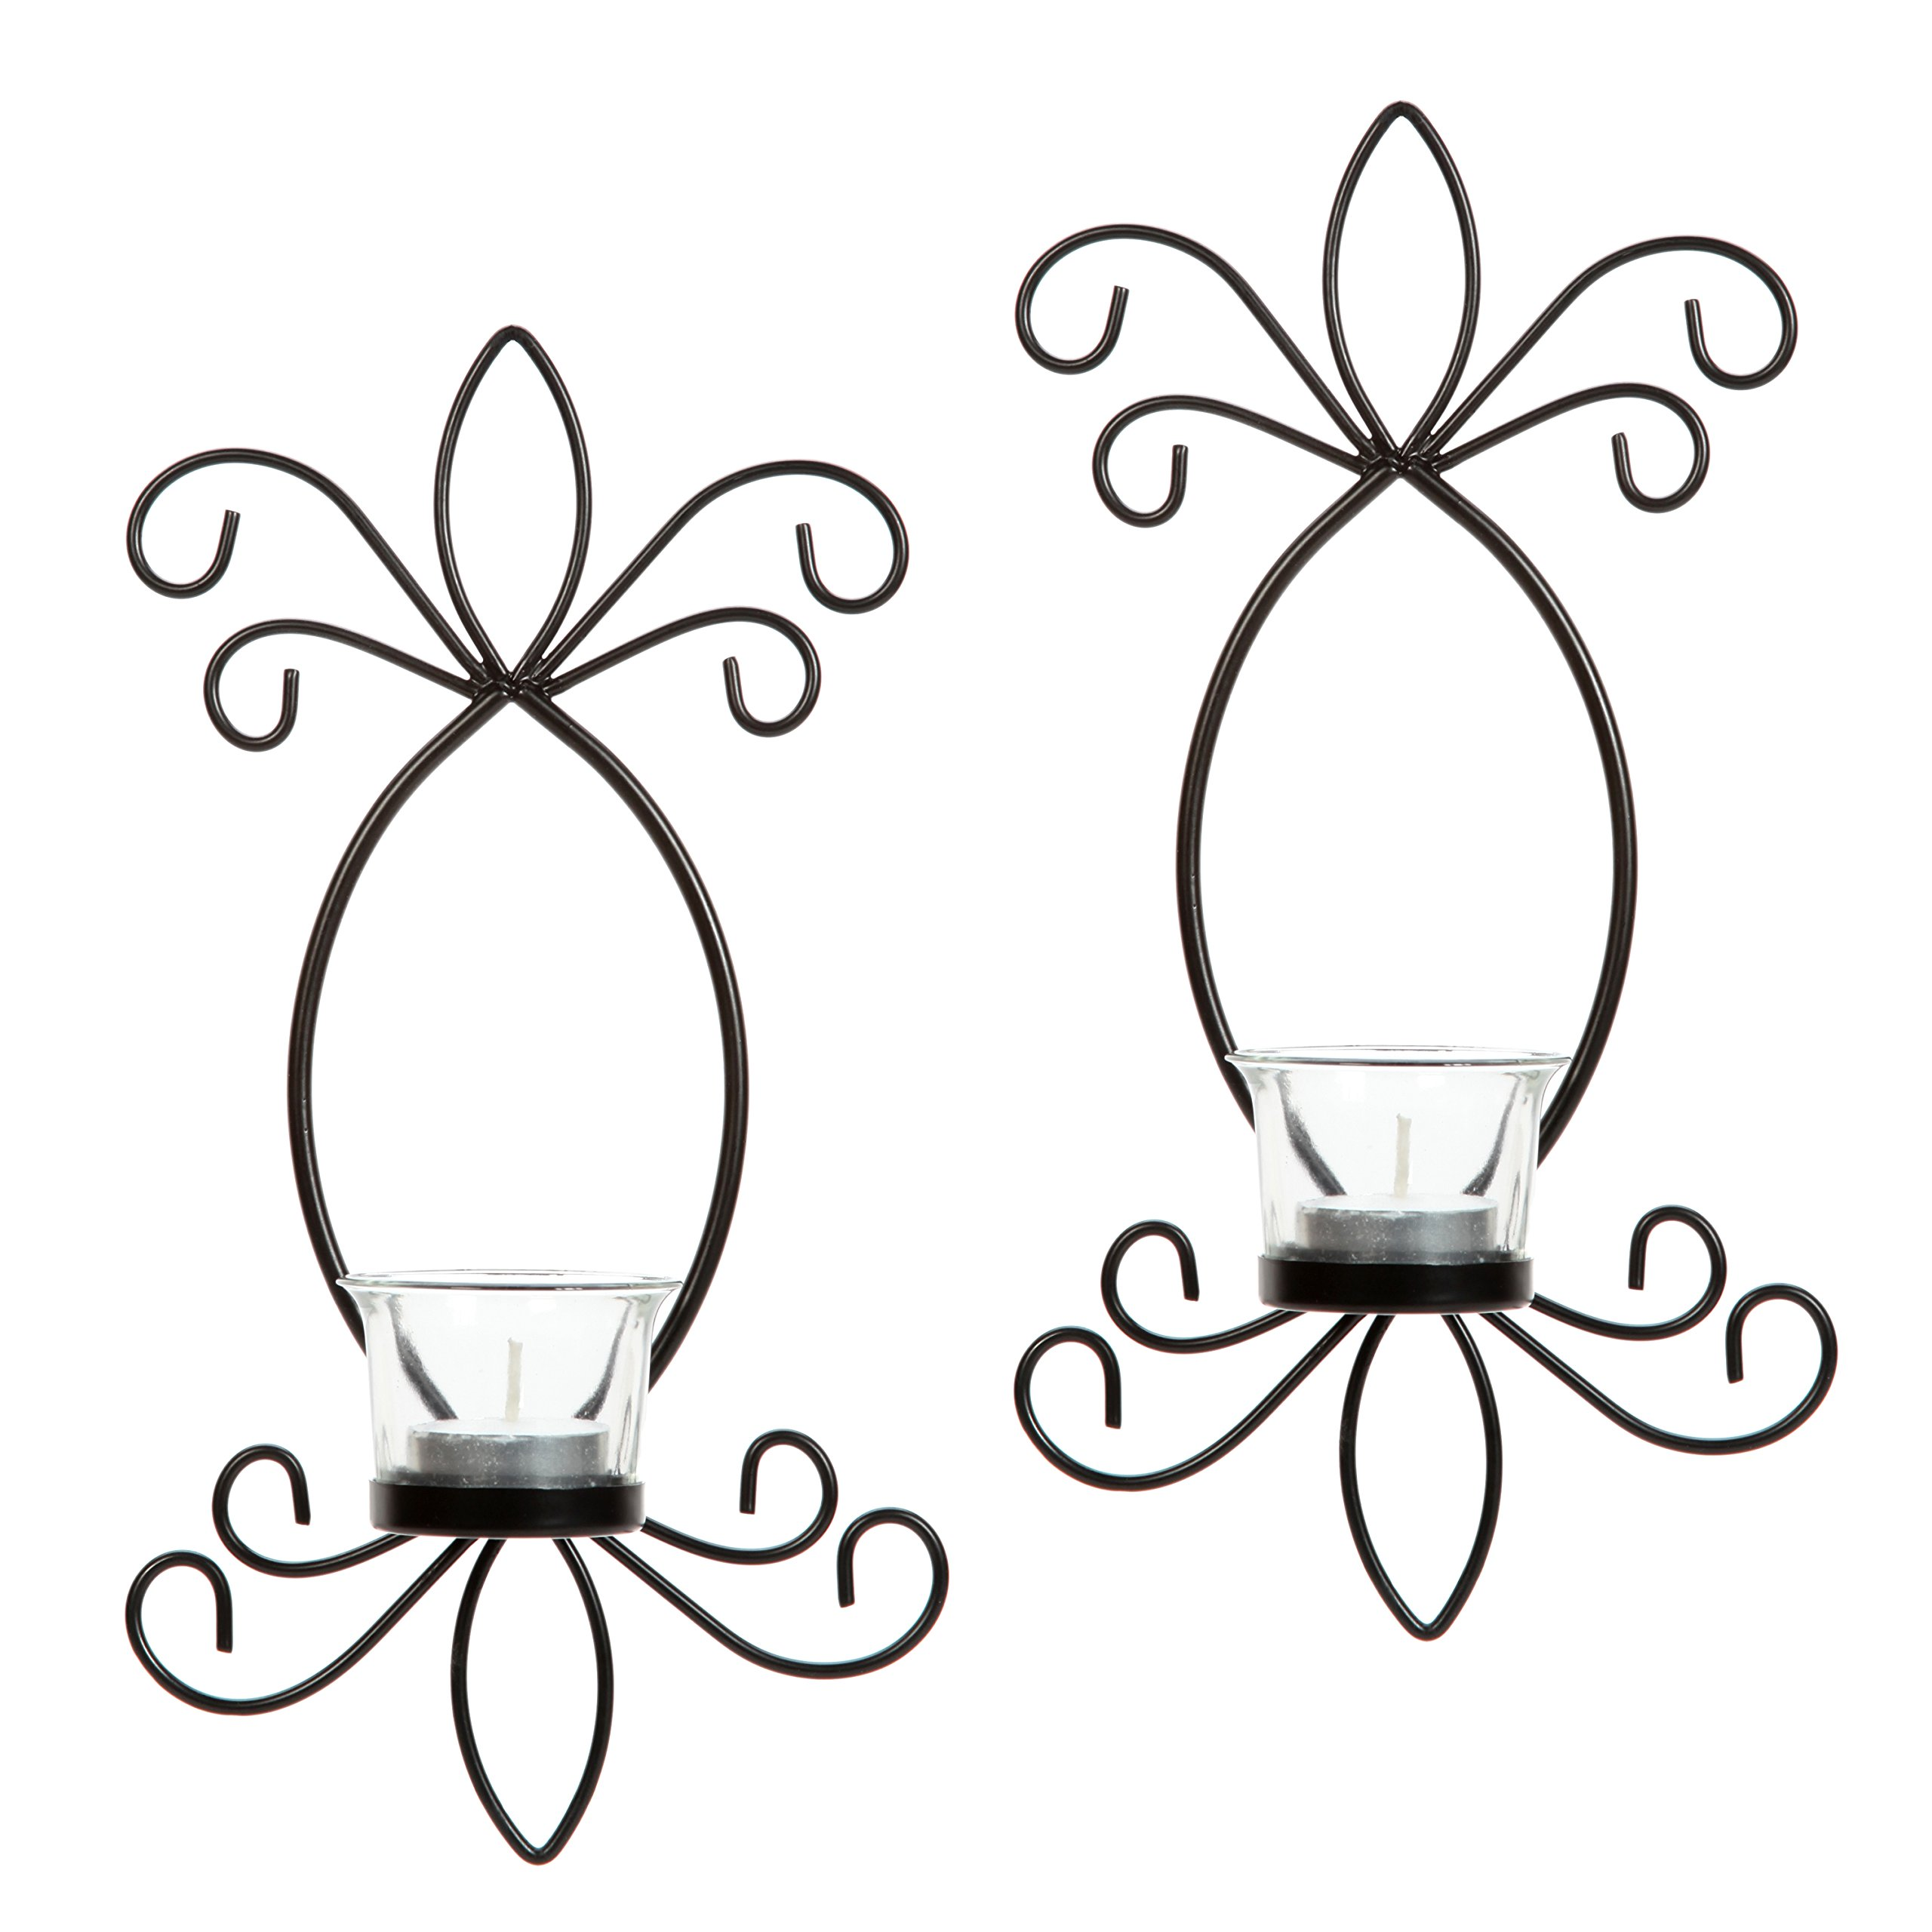 Hosley Set of 2 Iron Tea Light LED Candle Wall Sconces- 11.5'' High. Ideal Gift for Spa, Aromatherapy, Wedding, LED Tealight Candle Garden. Hand Made by Artisans O4 by Hosley